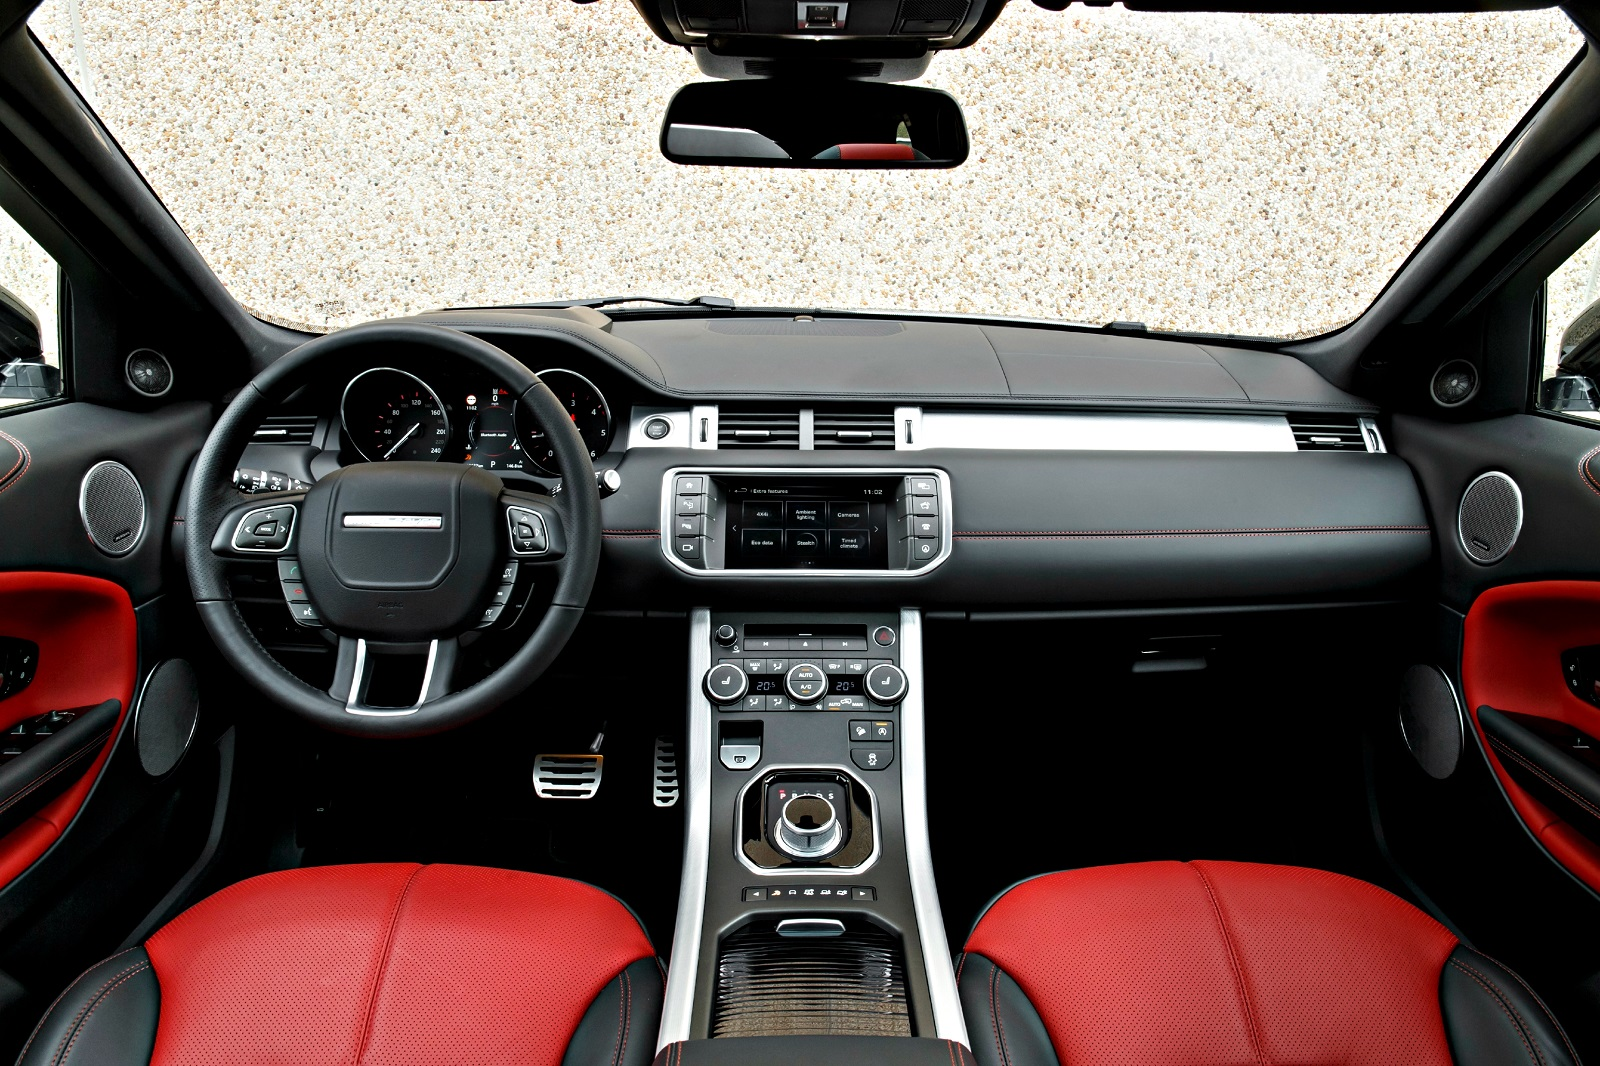 Essai range rover evoque restyl e plus qu 39 un simple suv for Interieur evoque